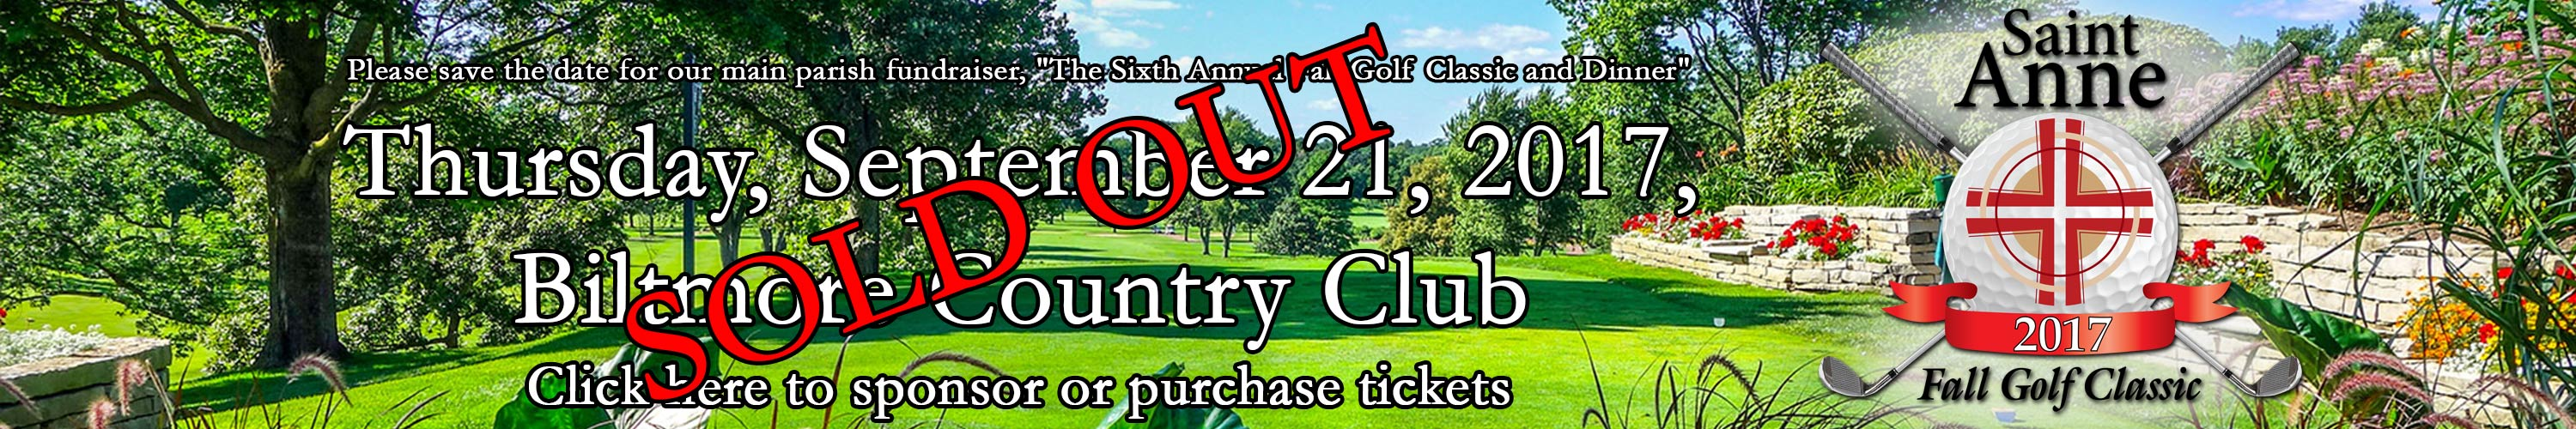 Golf-Outing-Banner-2016-sold-out